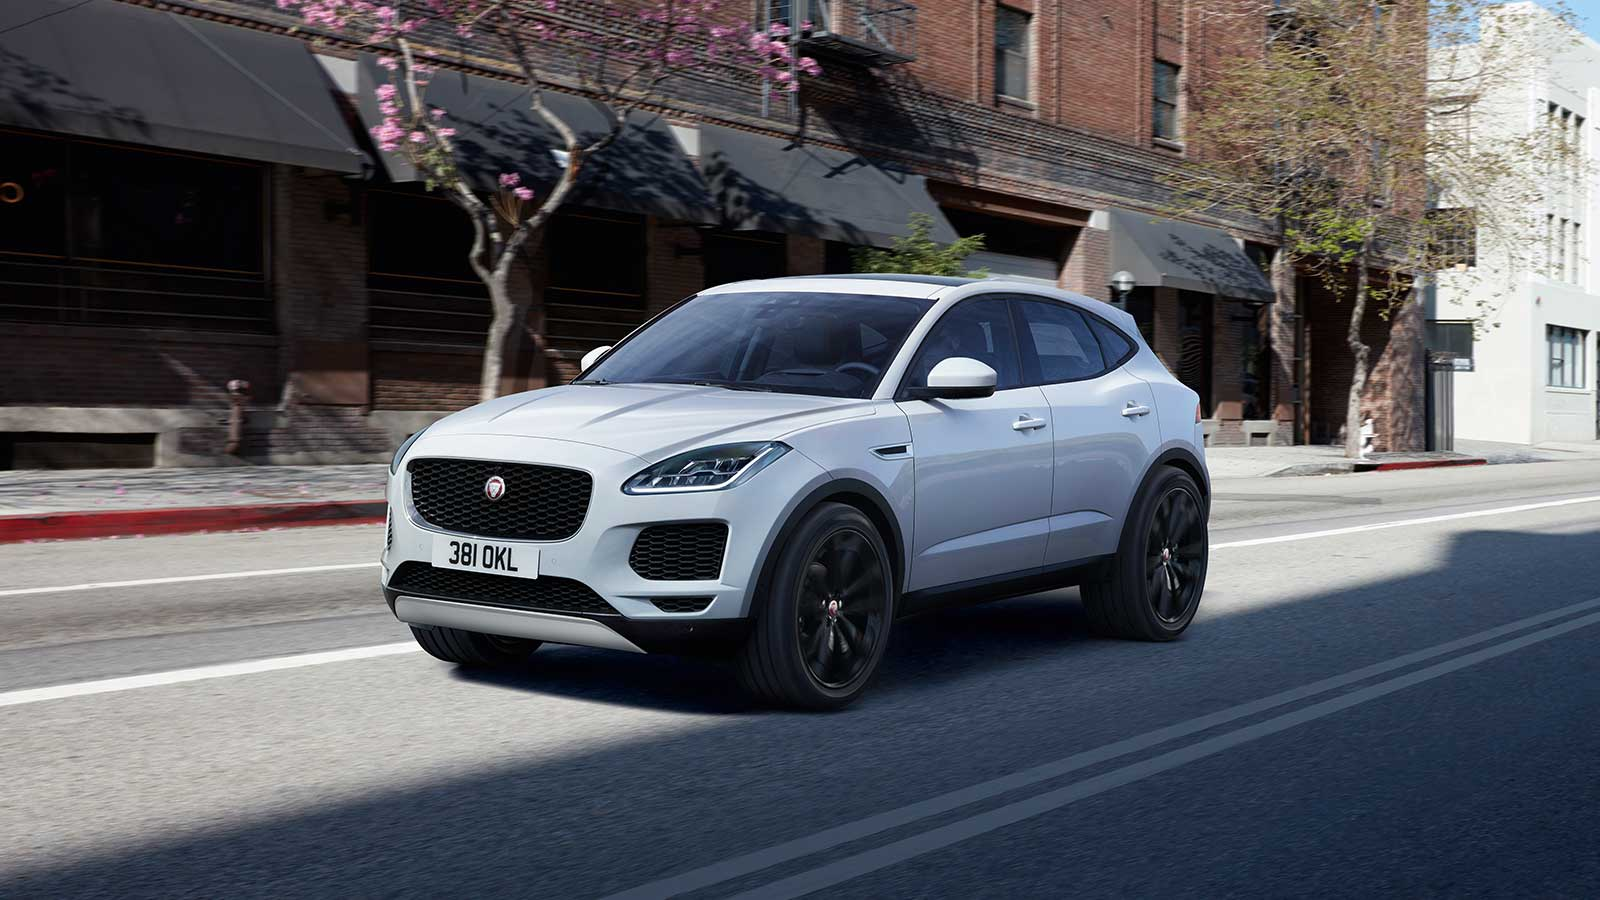 A White Jaguar E-PACE Driving In The Street.